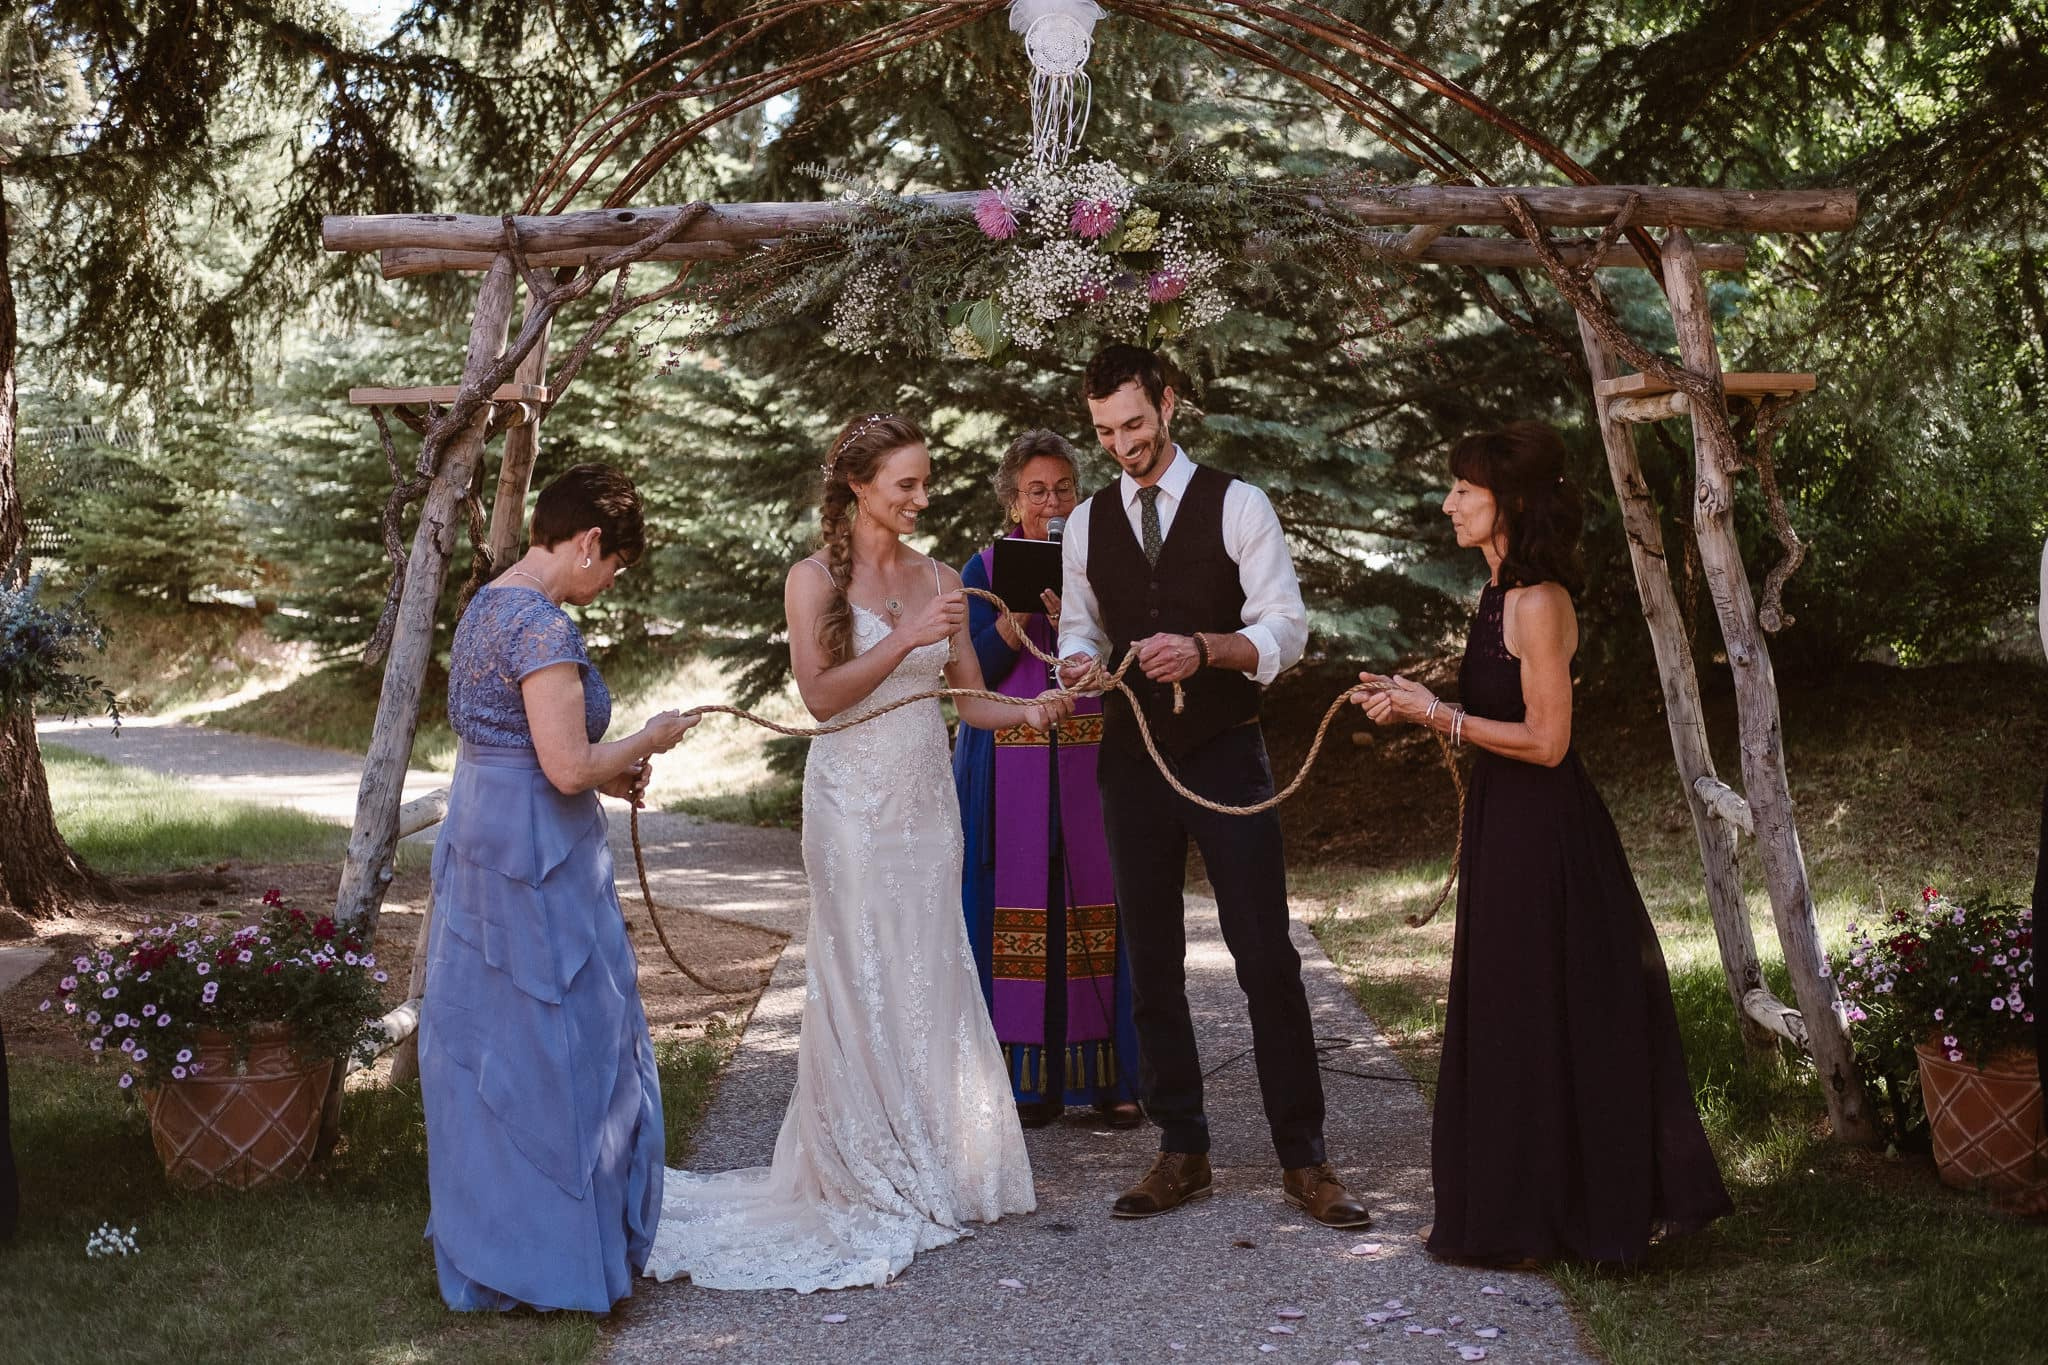 Redstone Inn wedding photographer, Carbondale wedding photographer, Colorado intimate wedding photographer, wedding ceremony with knot tying